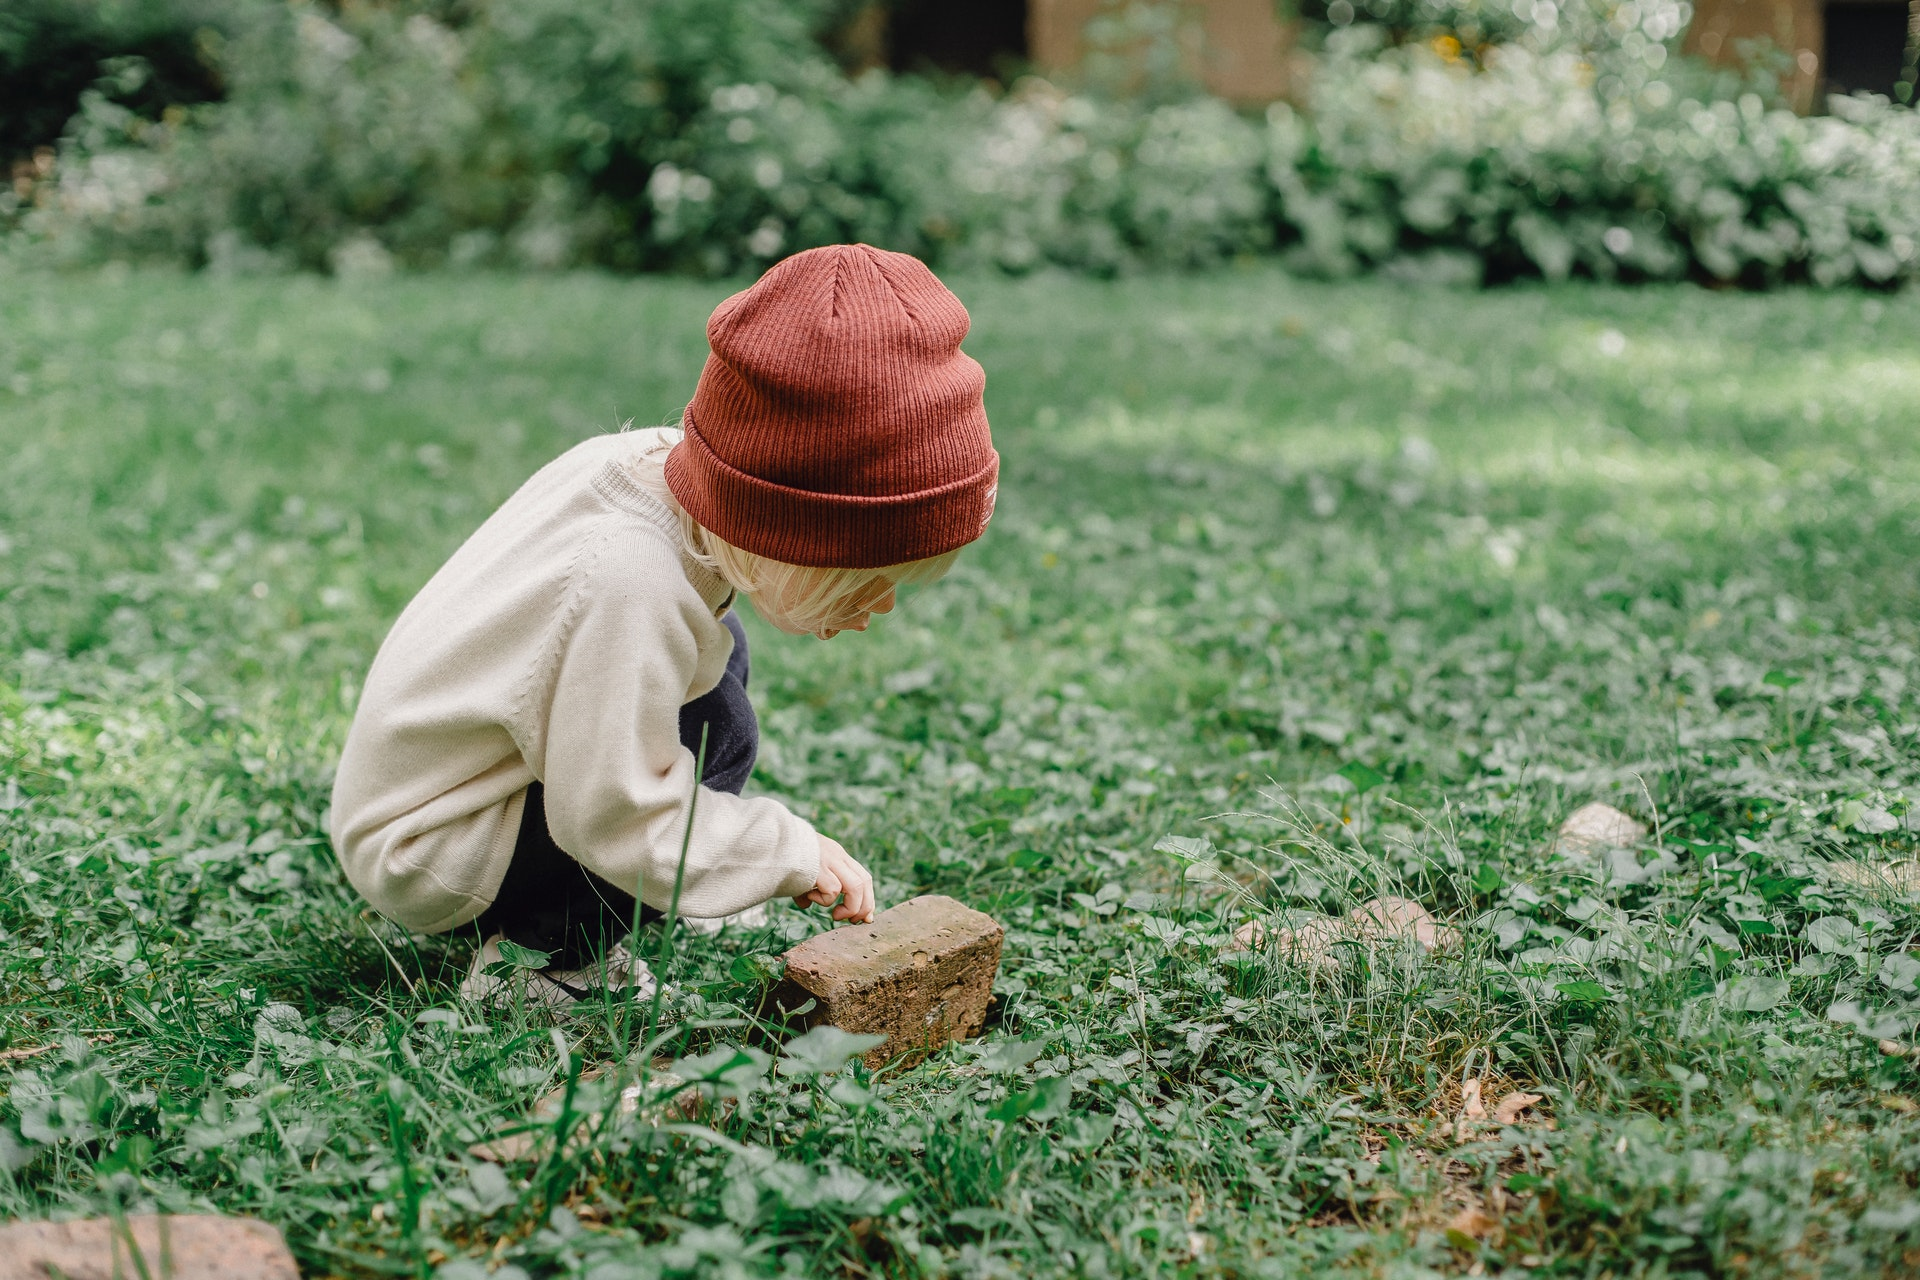 A young boy investigates a rock during some earth day activities for kids.